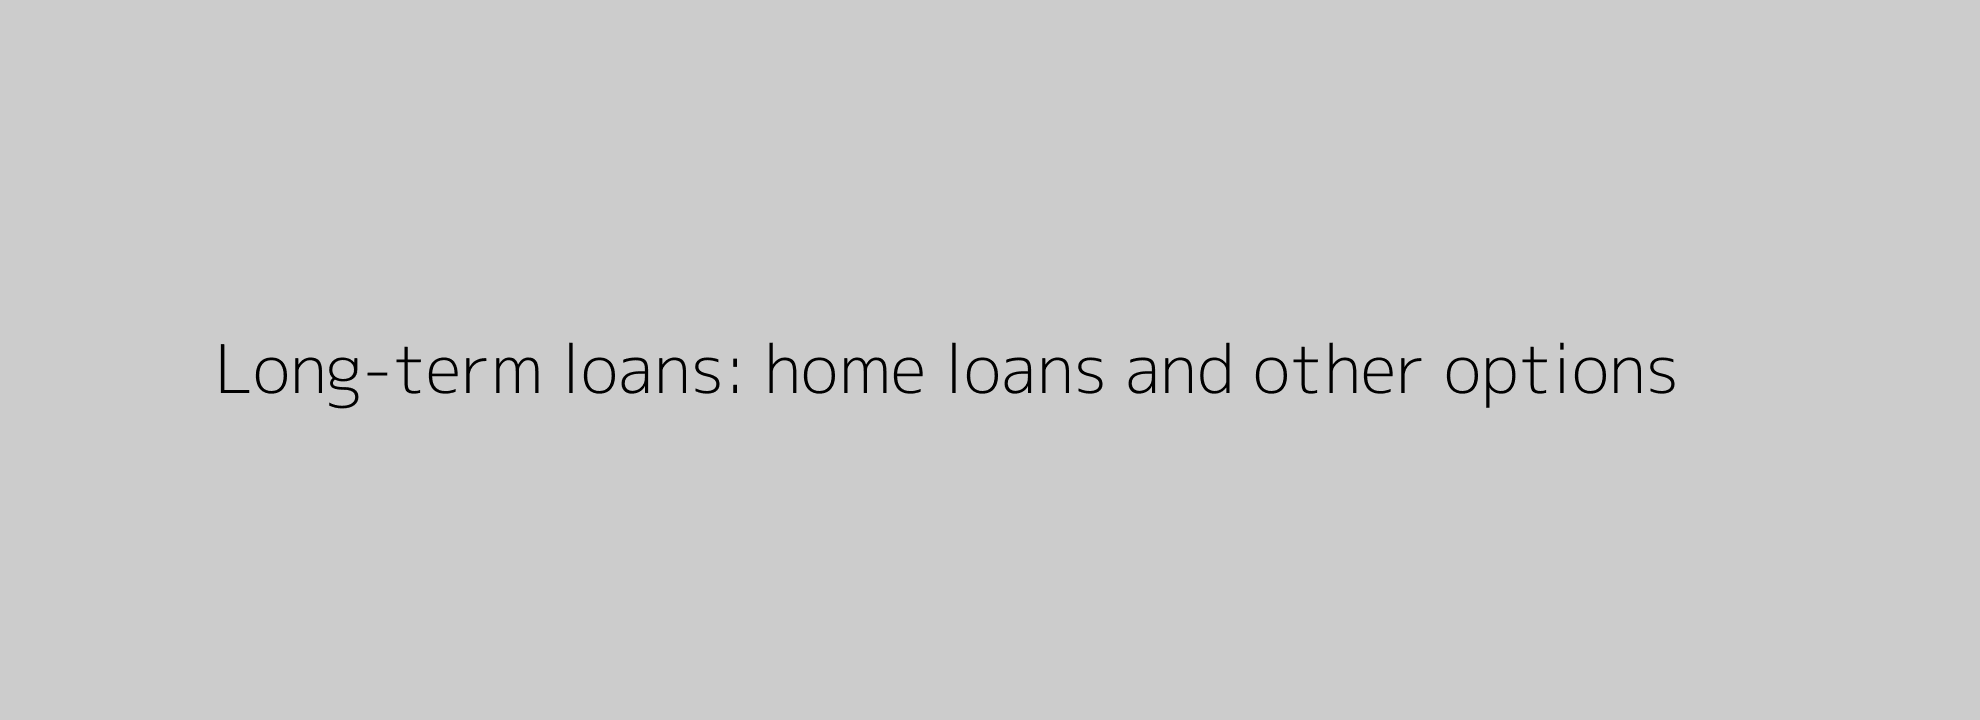 Long-term loans: home loans and other options